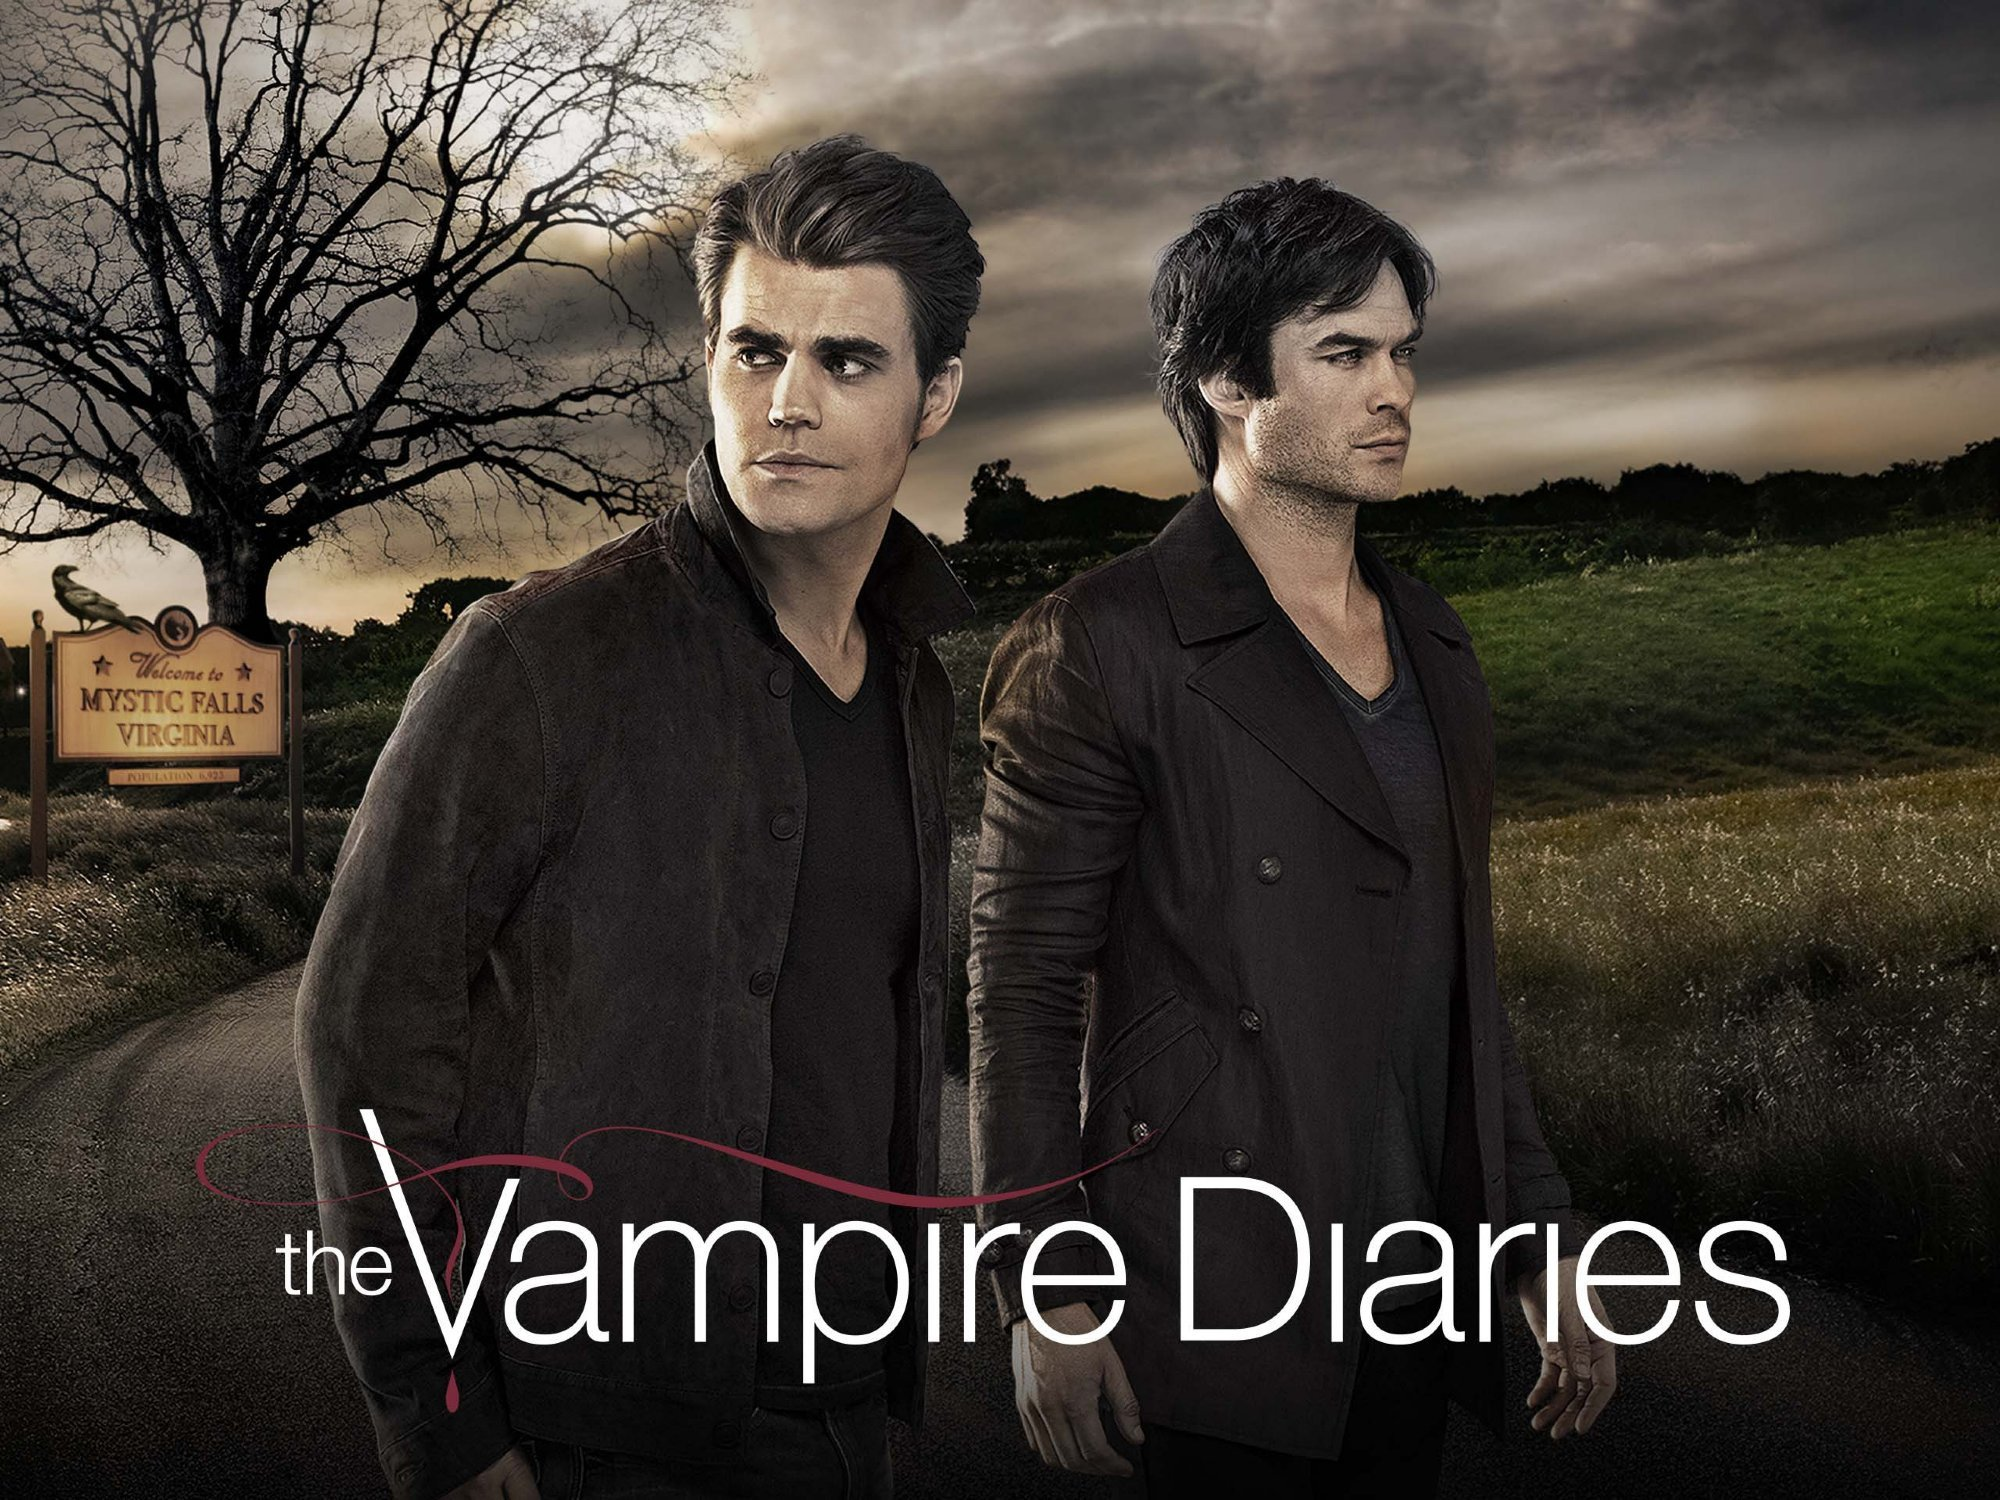 vampire diaries season 1 episode 7 online free